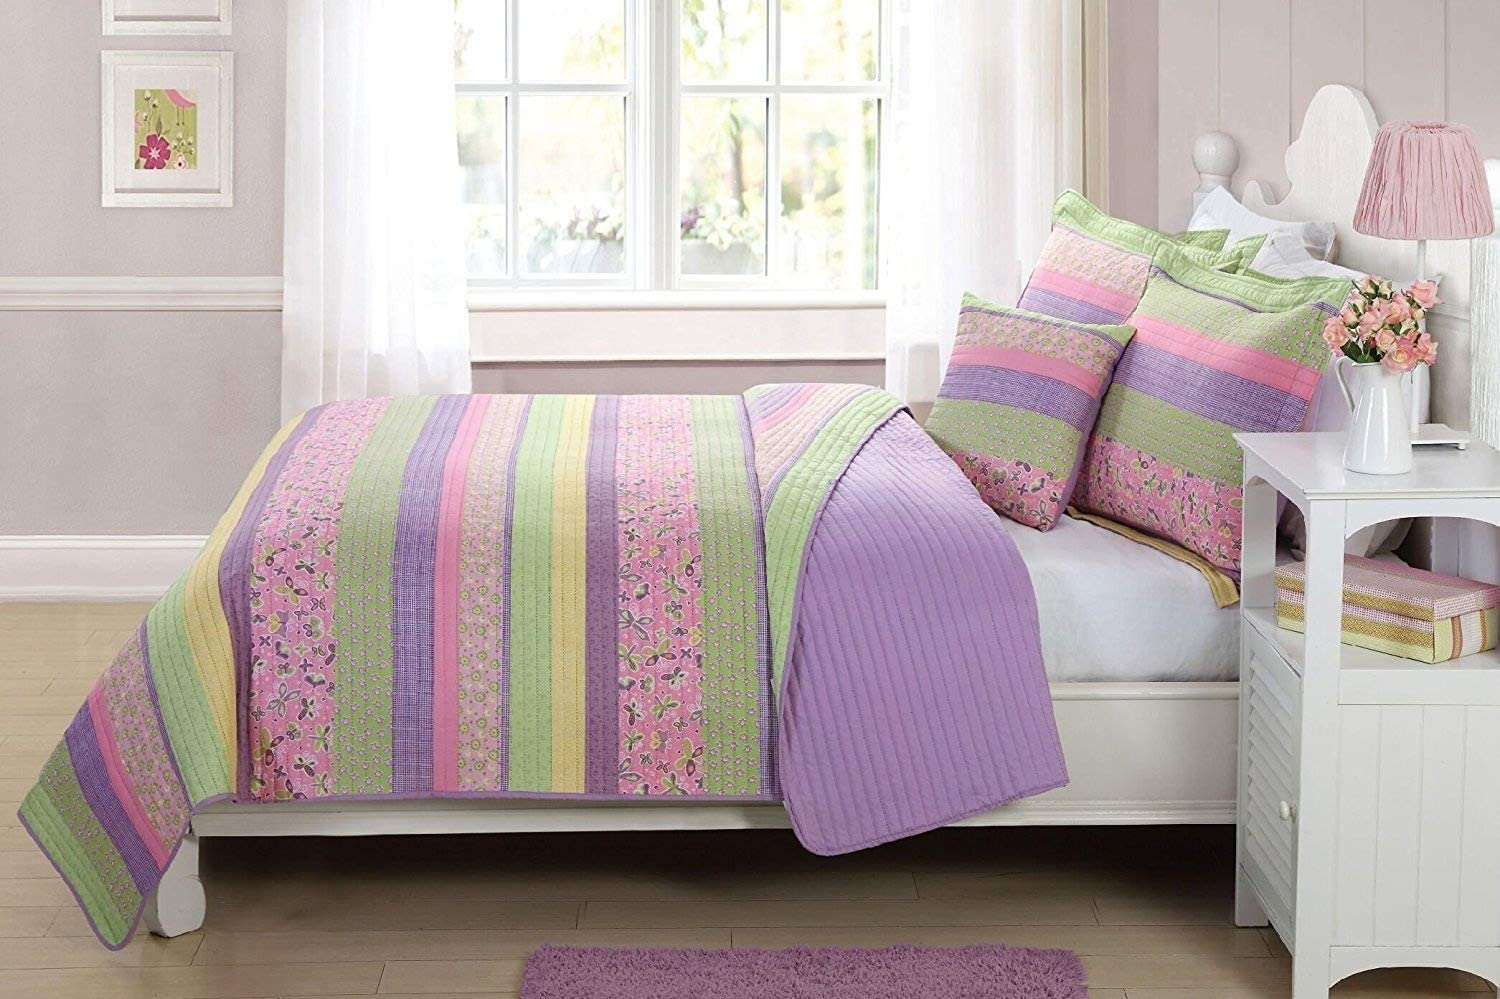 Full Elegant Home Multicolor Pink White Green Blue Fun Elephants Design Striped Printed Reversible Cozy Colorful 4 Piece Full Size Quilt Bedspread Set with Decorative Pillow for Kids//Girls